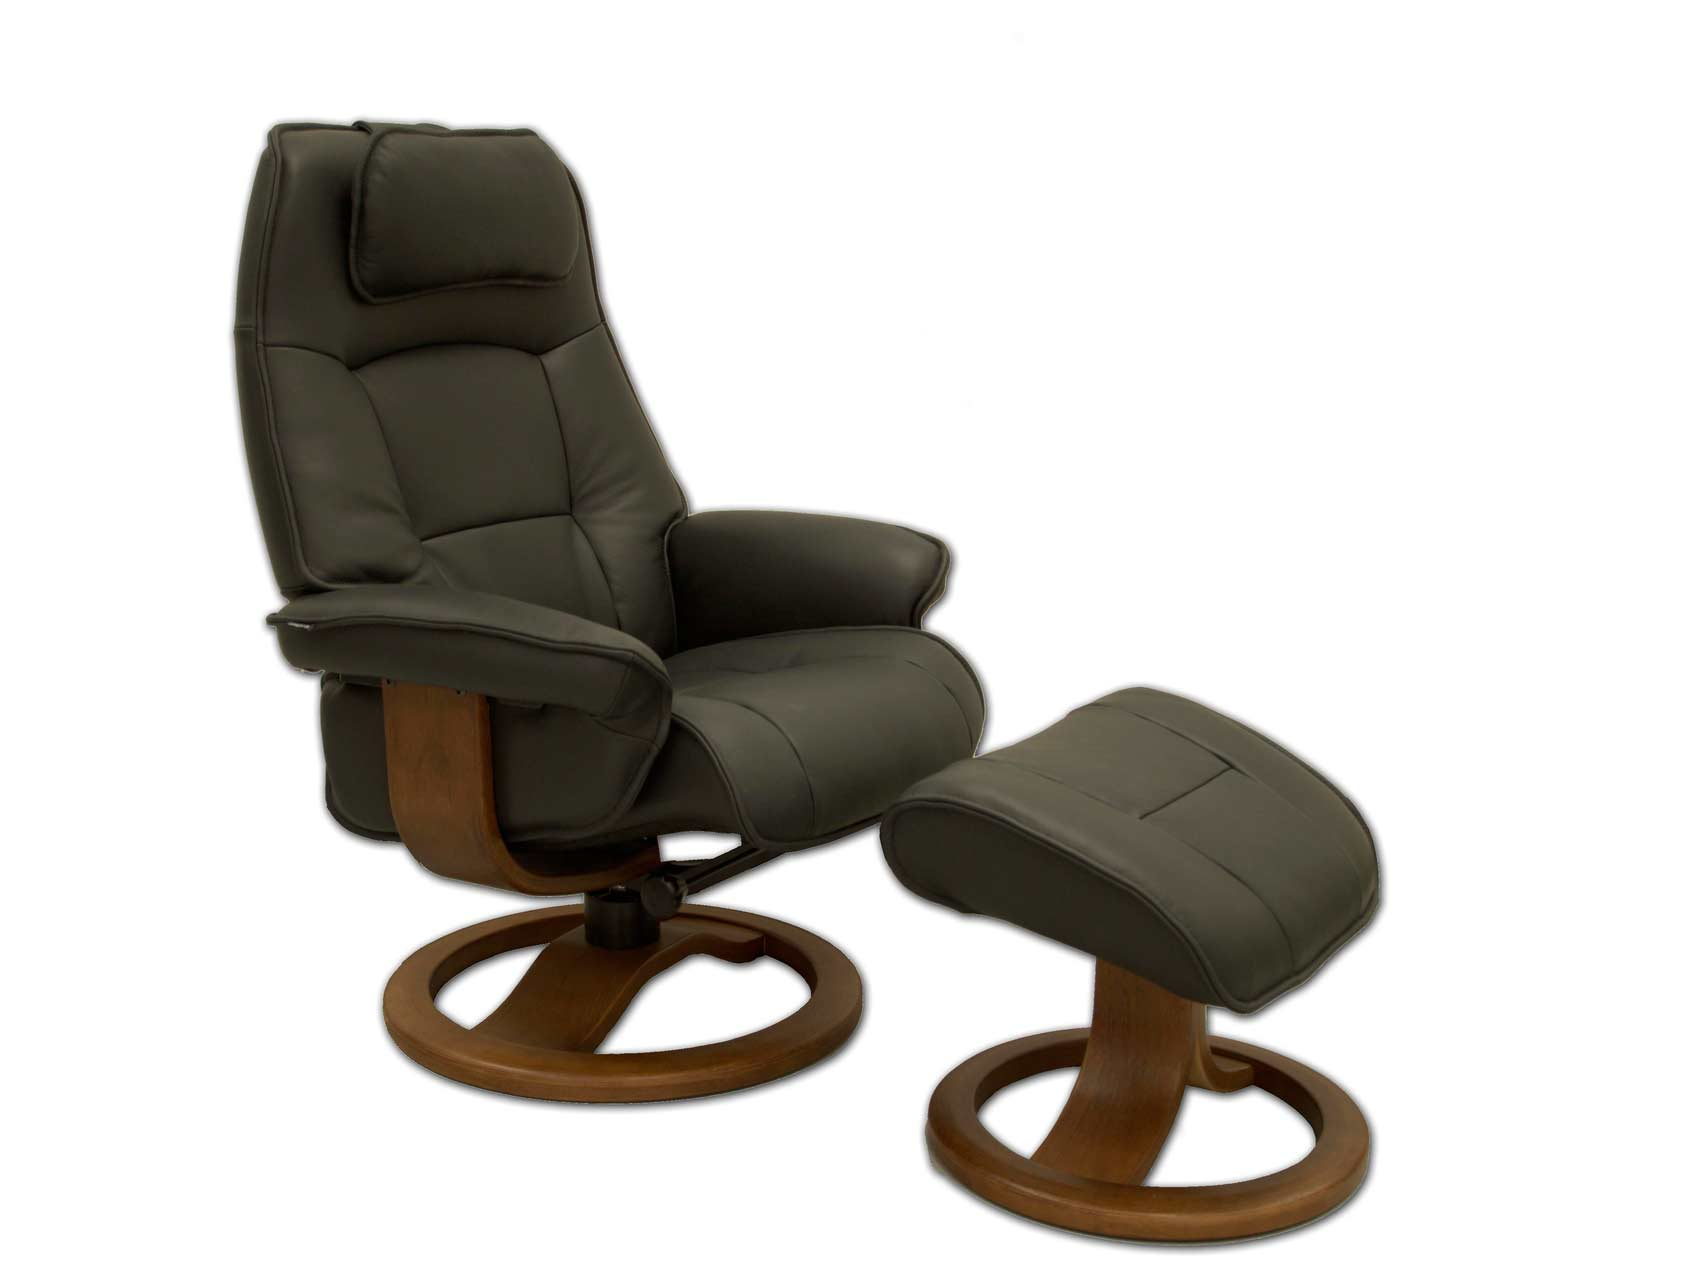 fjords admiral large ergonomic recliner by hjellegjerde  fjords  - fjords admiral large ergonomic recliner by hjellegjerde